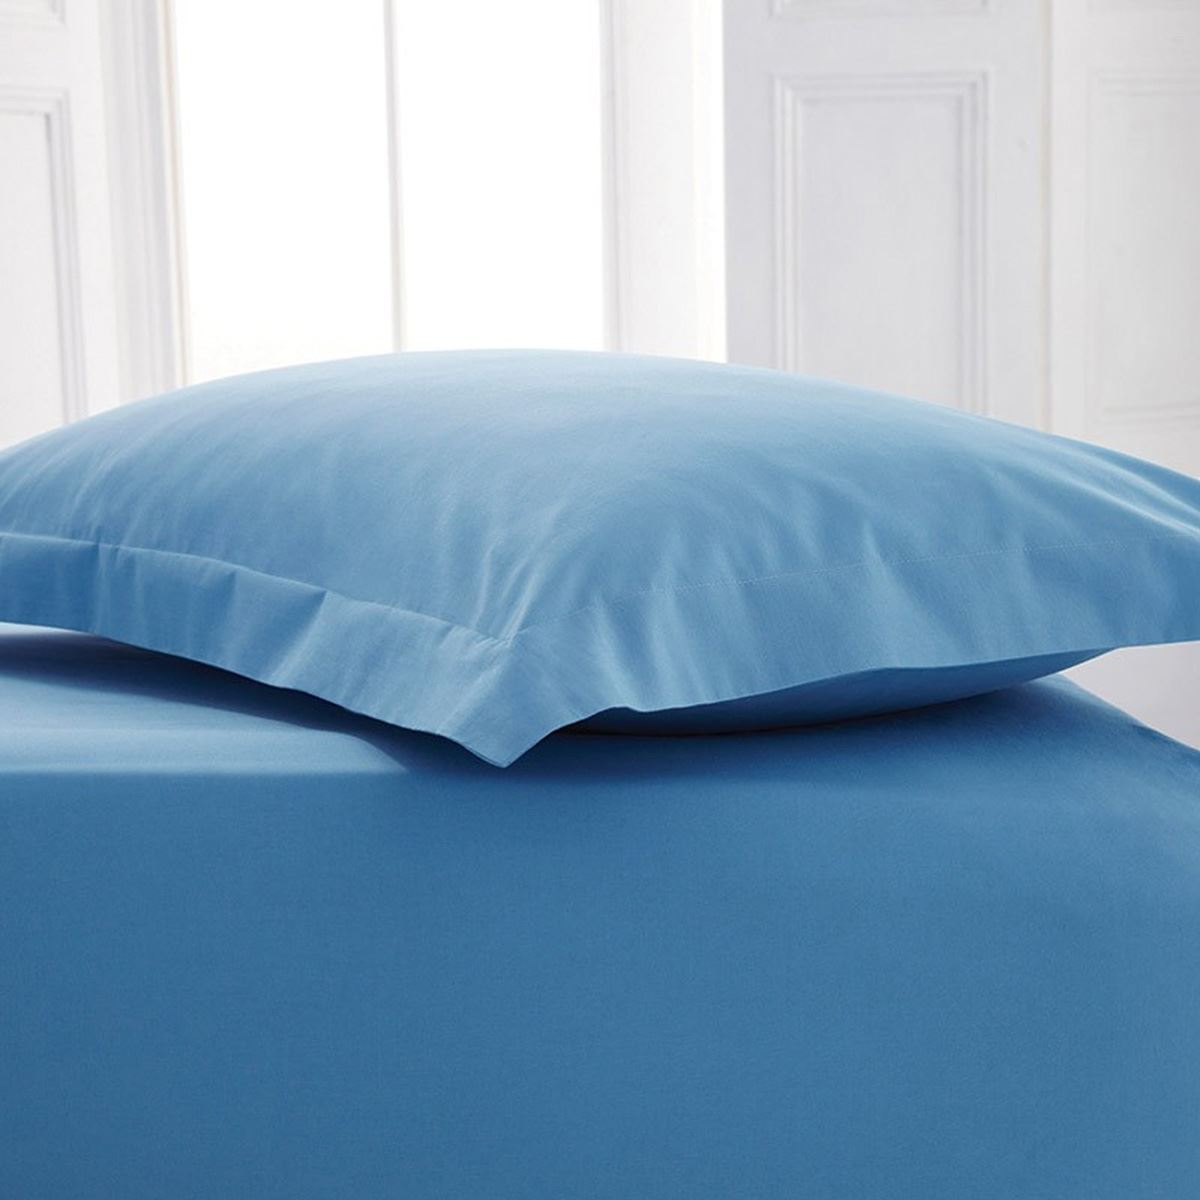 Genial 4 Foot Small Double Poly Cotton Fitted Bed Sheets Bed Linen Mid Blue. About  This Product. Picture 1 Of 2; Picture 2 Of 2